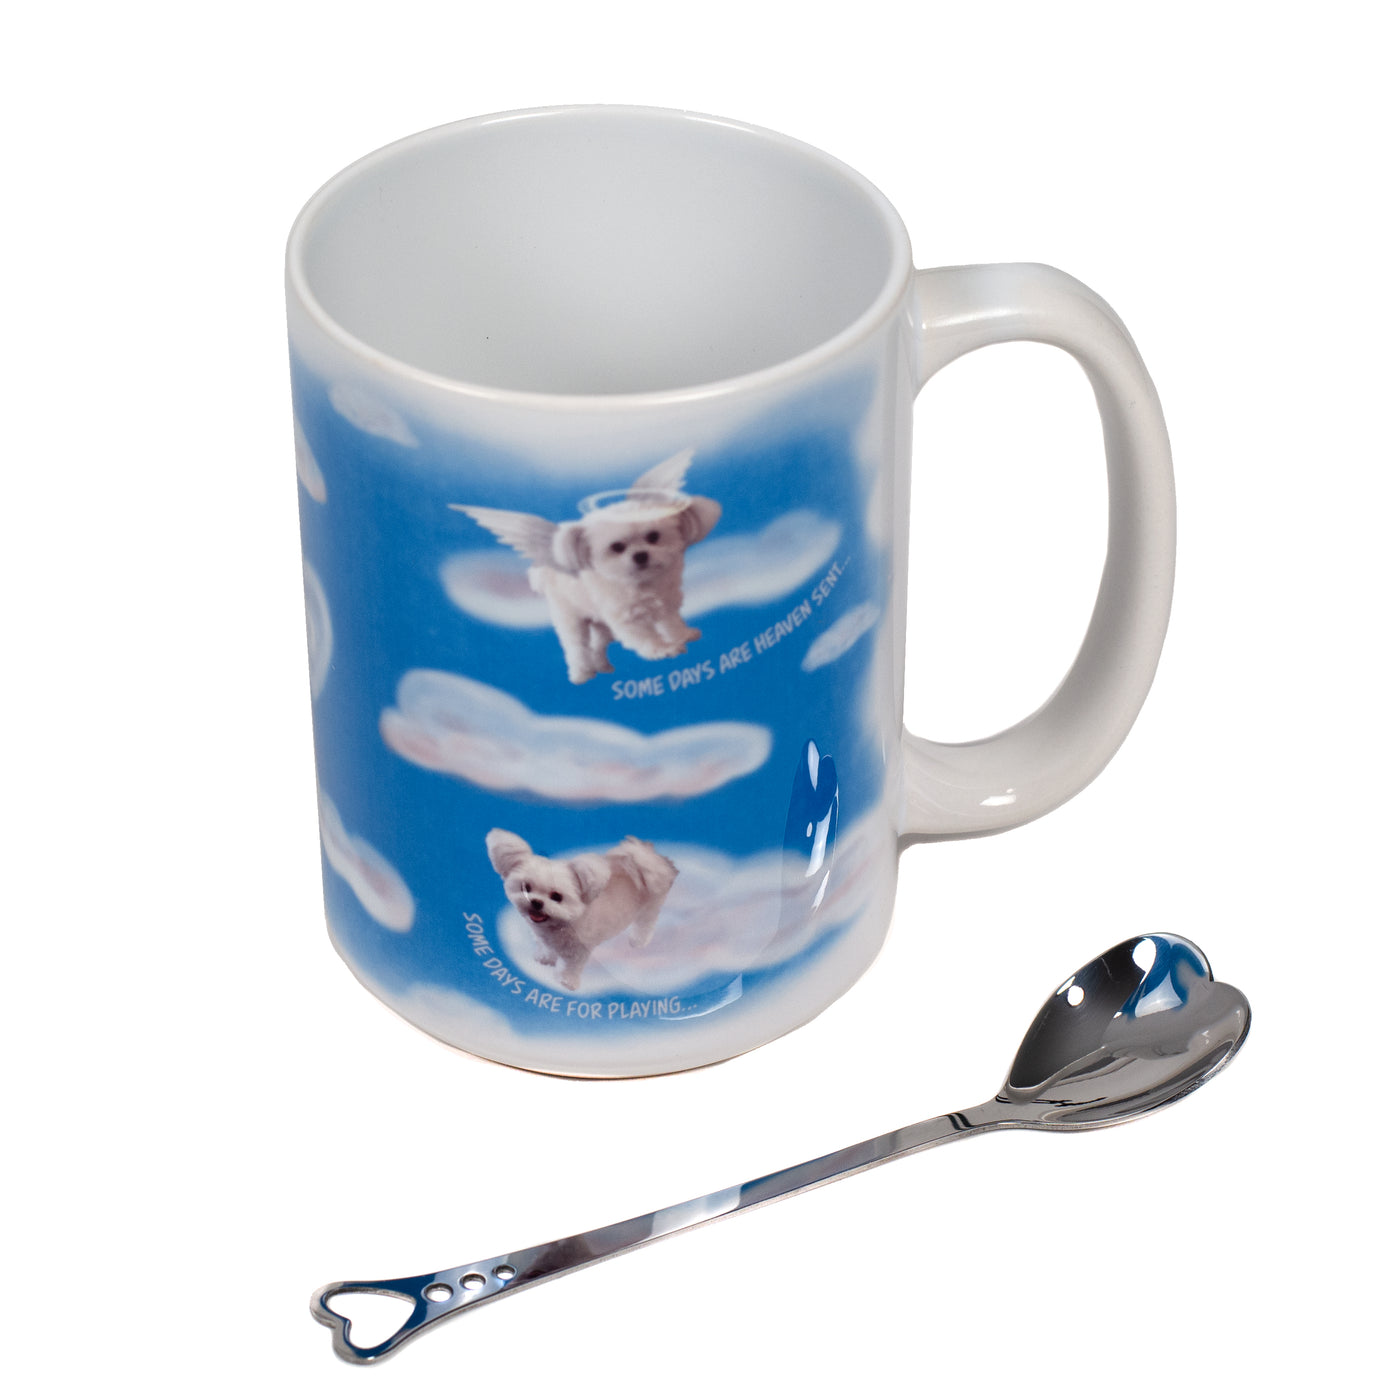 Coffee on Cloud 9 Mug - - Unique Gifts | Healing Hearts Journey